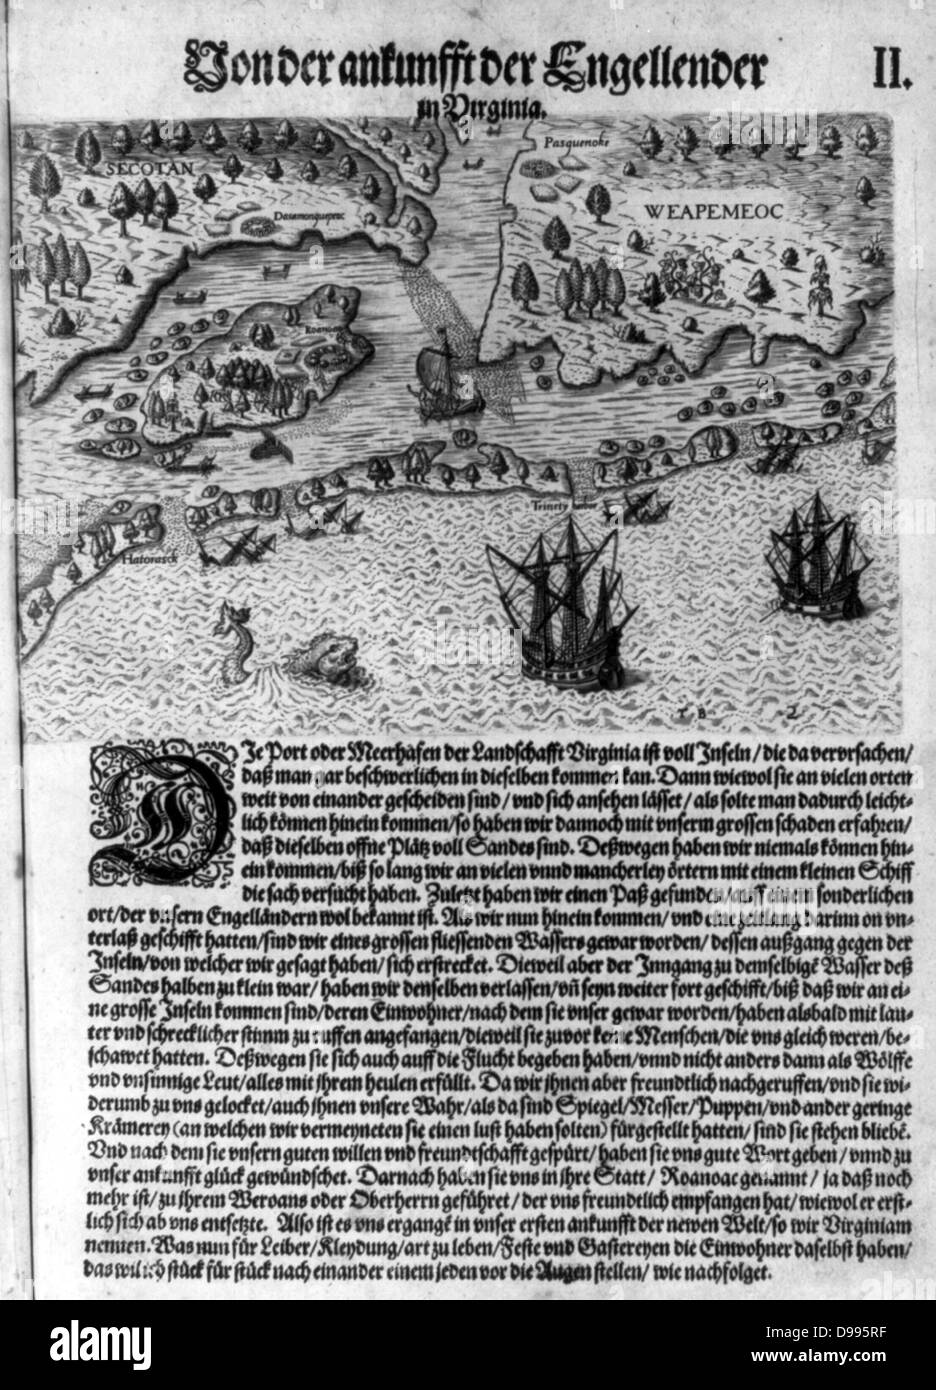 The Colony of Virginia depicted in a book with Map. 17th Century. - Stock Image